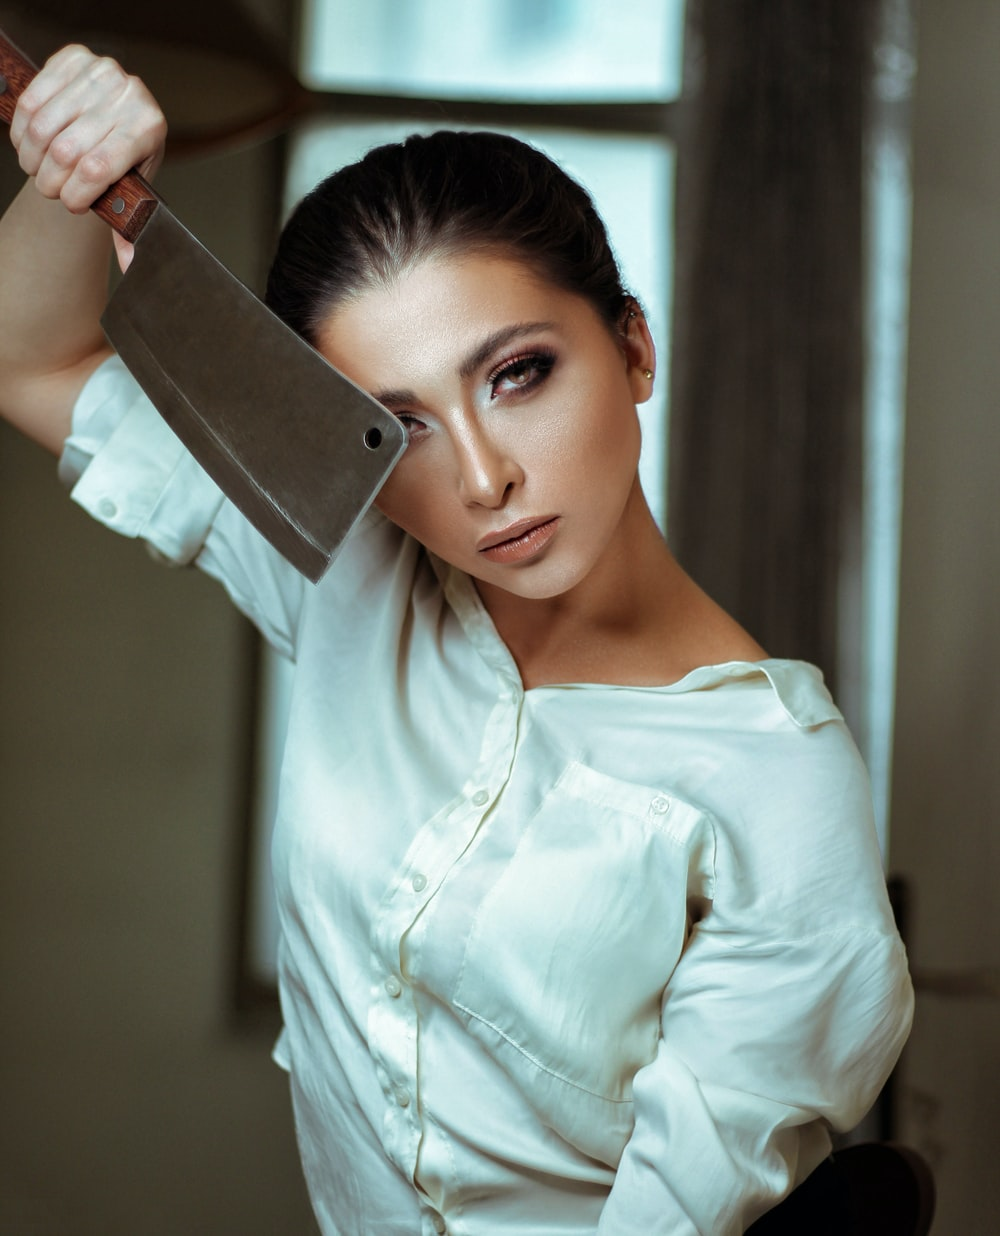 shallow focus photo of woman in white dress shirt holding cleaver